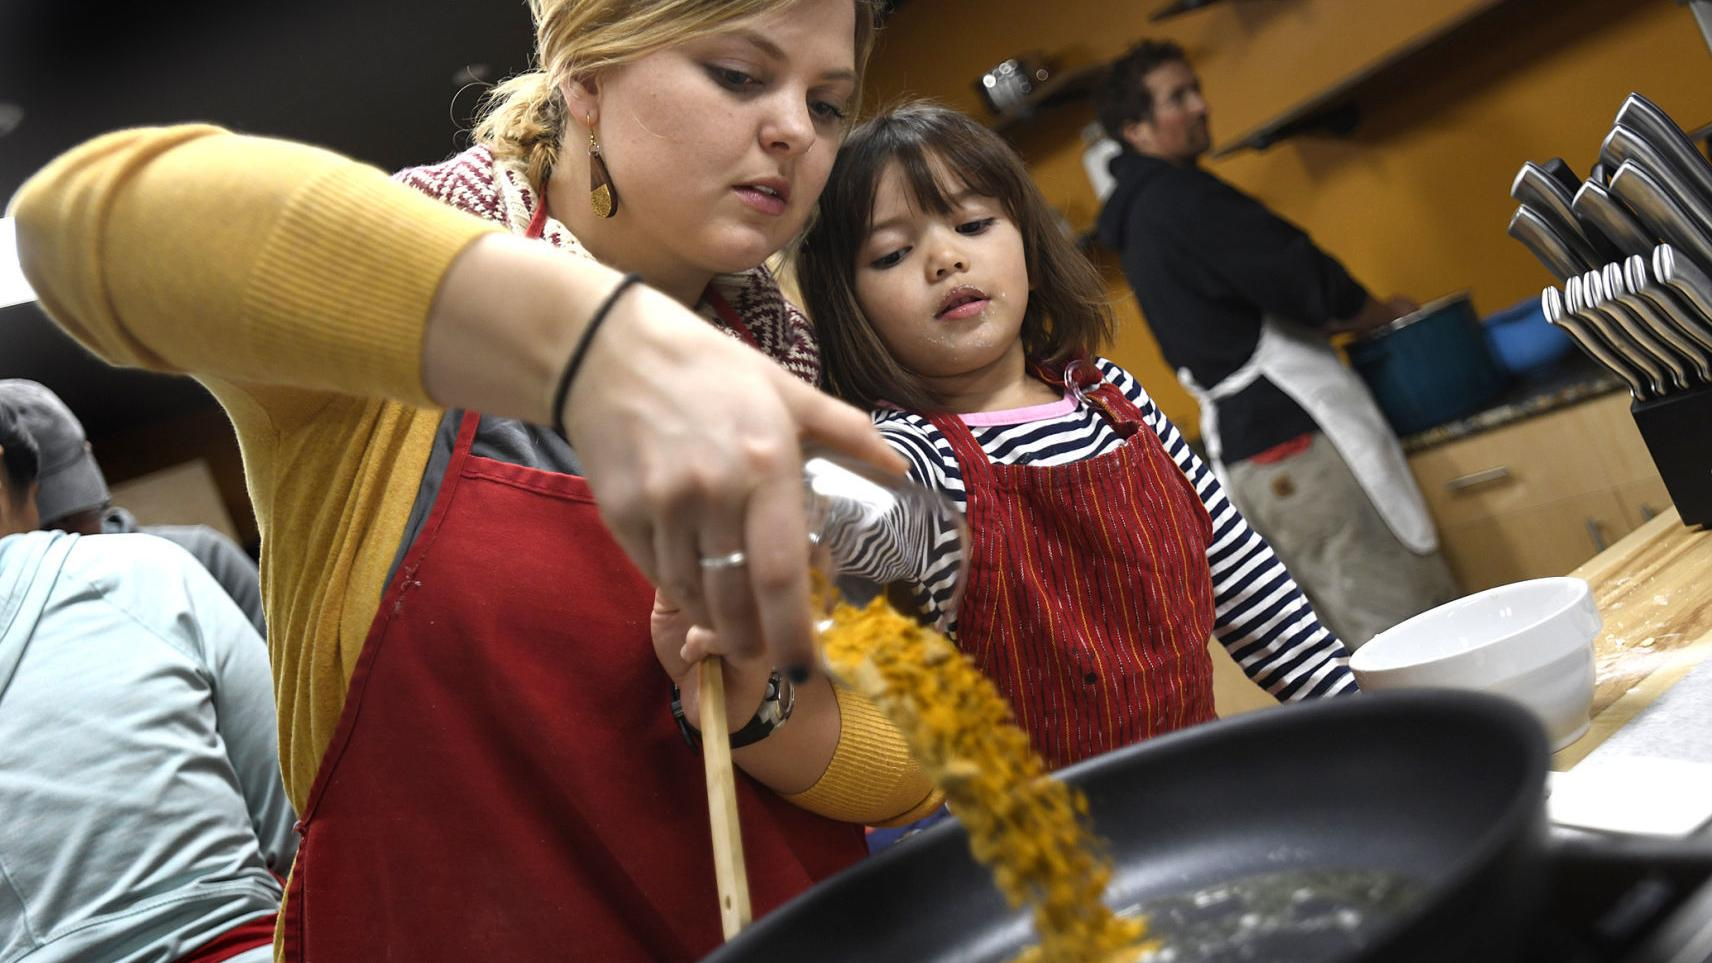 Cooking classes at Missoula Food Bank encourage experimentation, new friendships